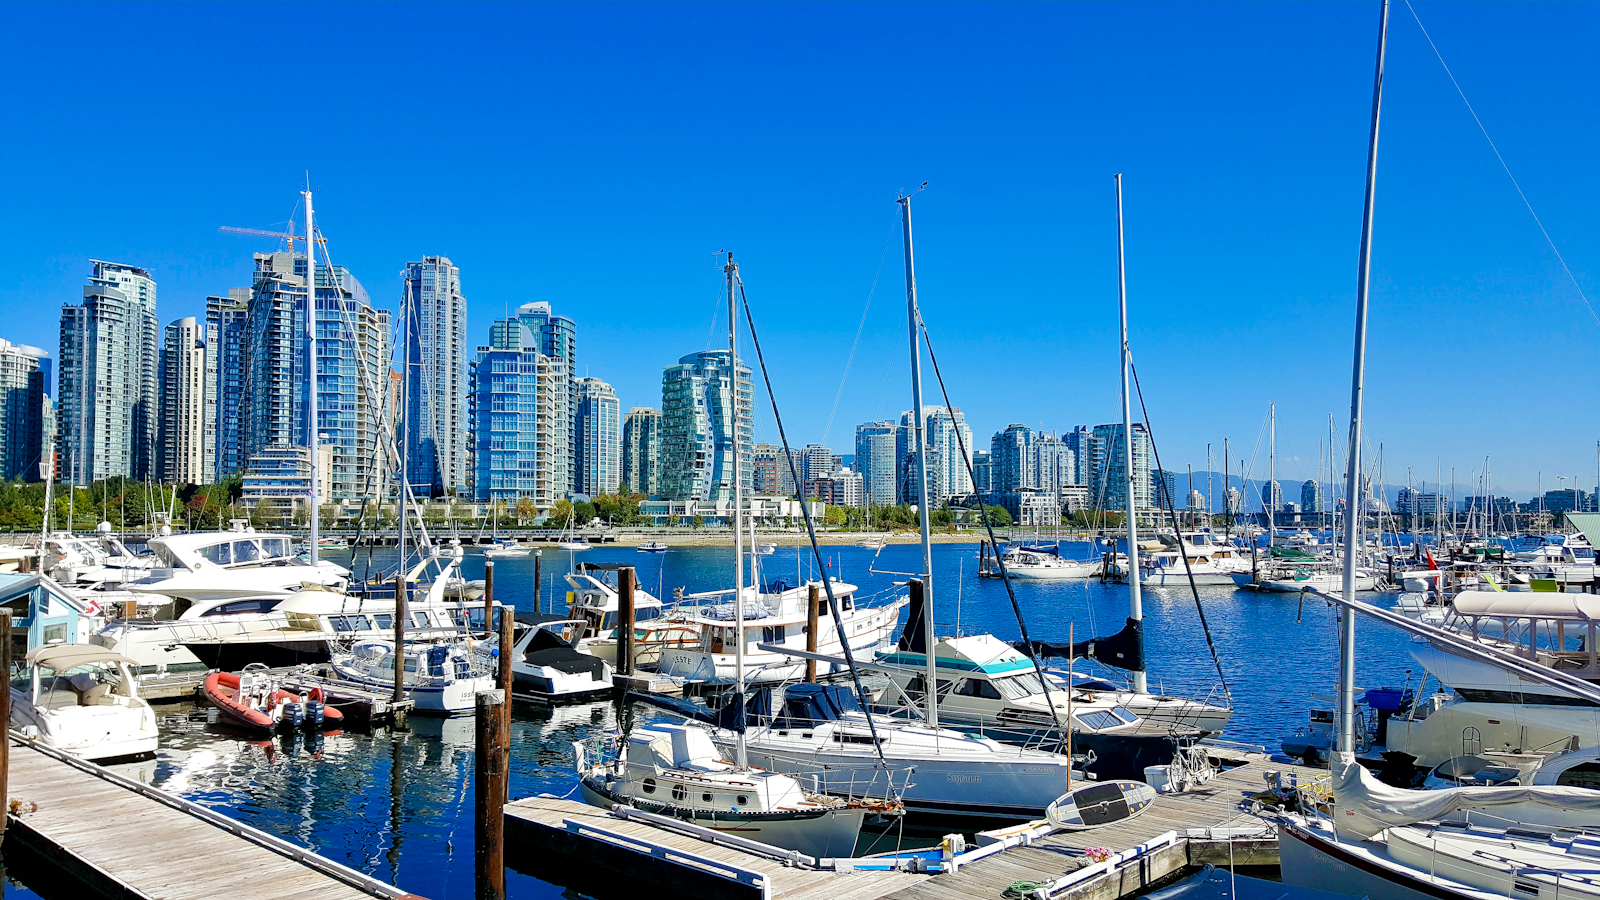 Yaletown from Granville Island